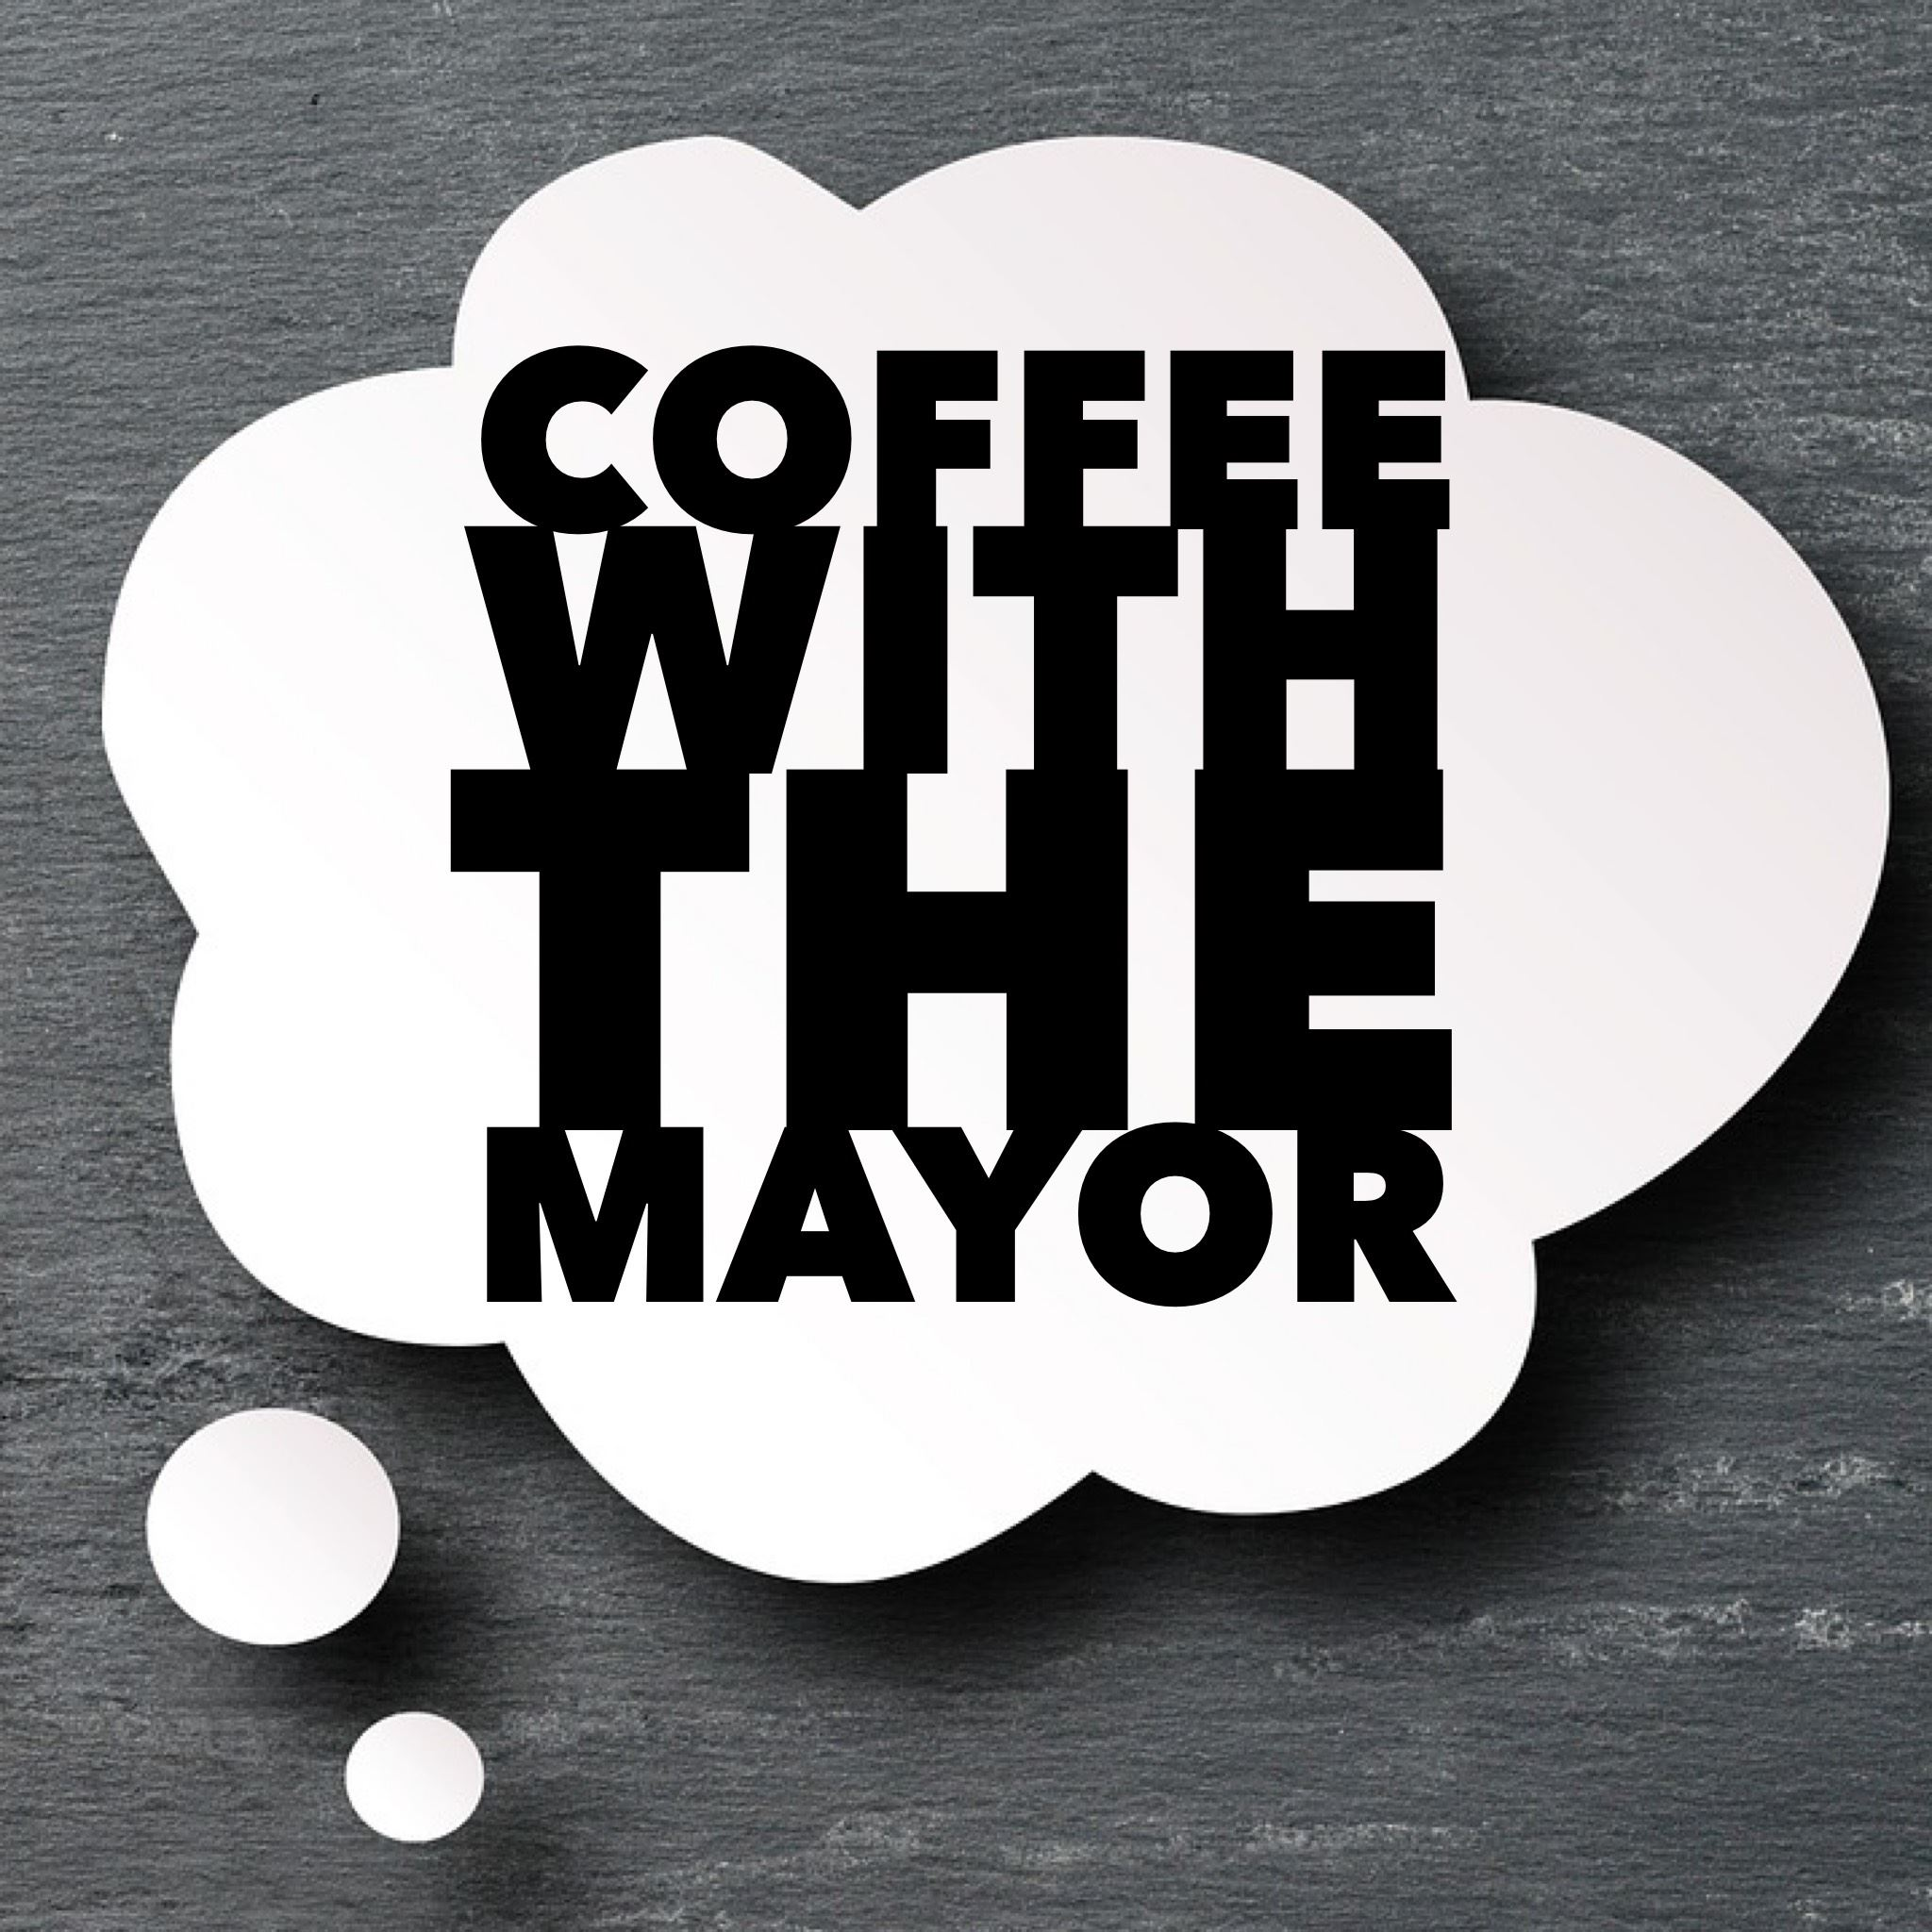 coffee with mayor